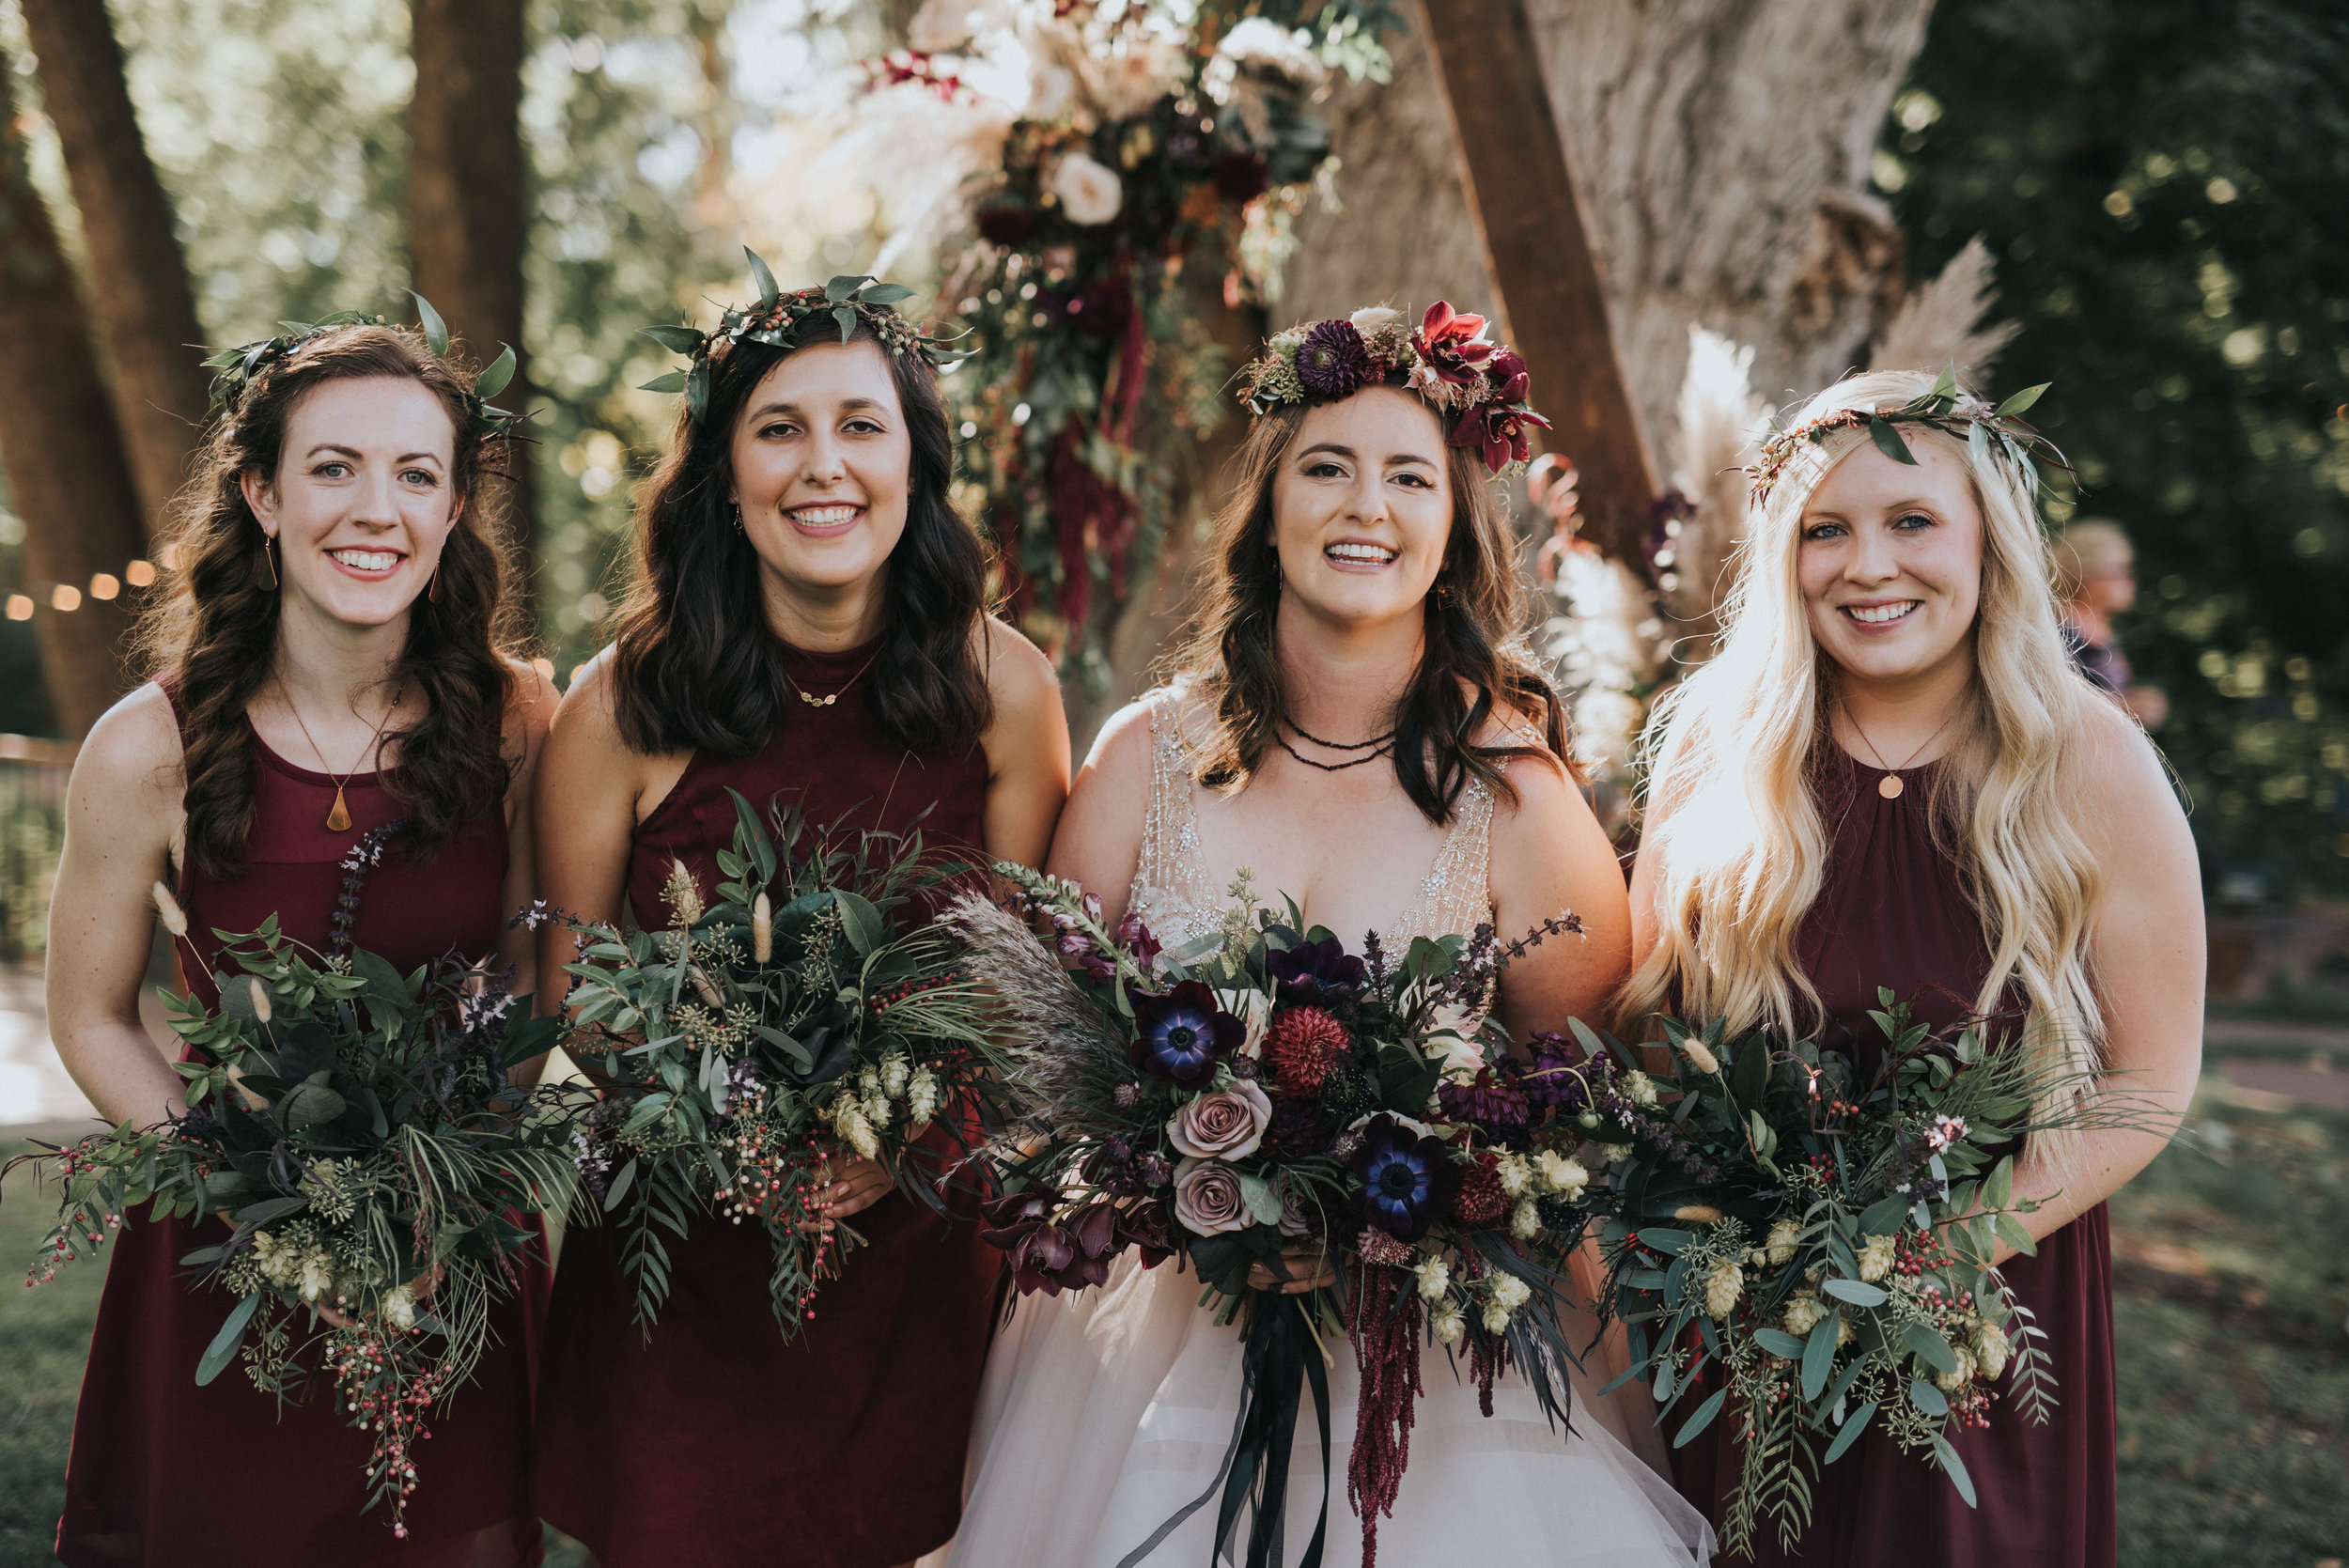 Flowers by Lace and Lilies, boutonniere, wedding flowers, jewel tones, pampas grass, hops, texture, colorado wedding, a-frame arch, arch flowers, altar flowers, ceremony flowers, moody toned wedding, pampas grass, bridal party, burgundy dresses, foliage bouquets, flower crowns